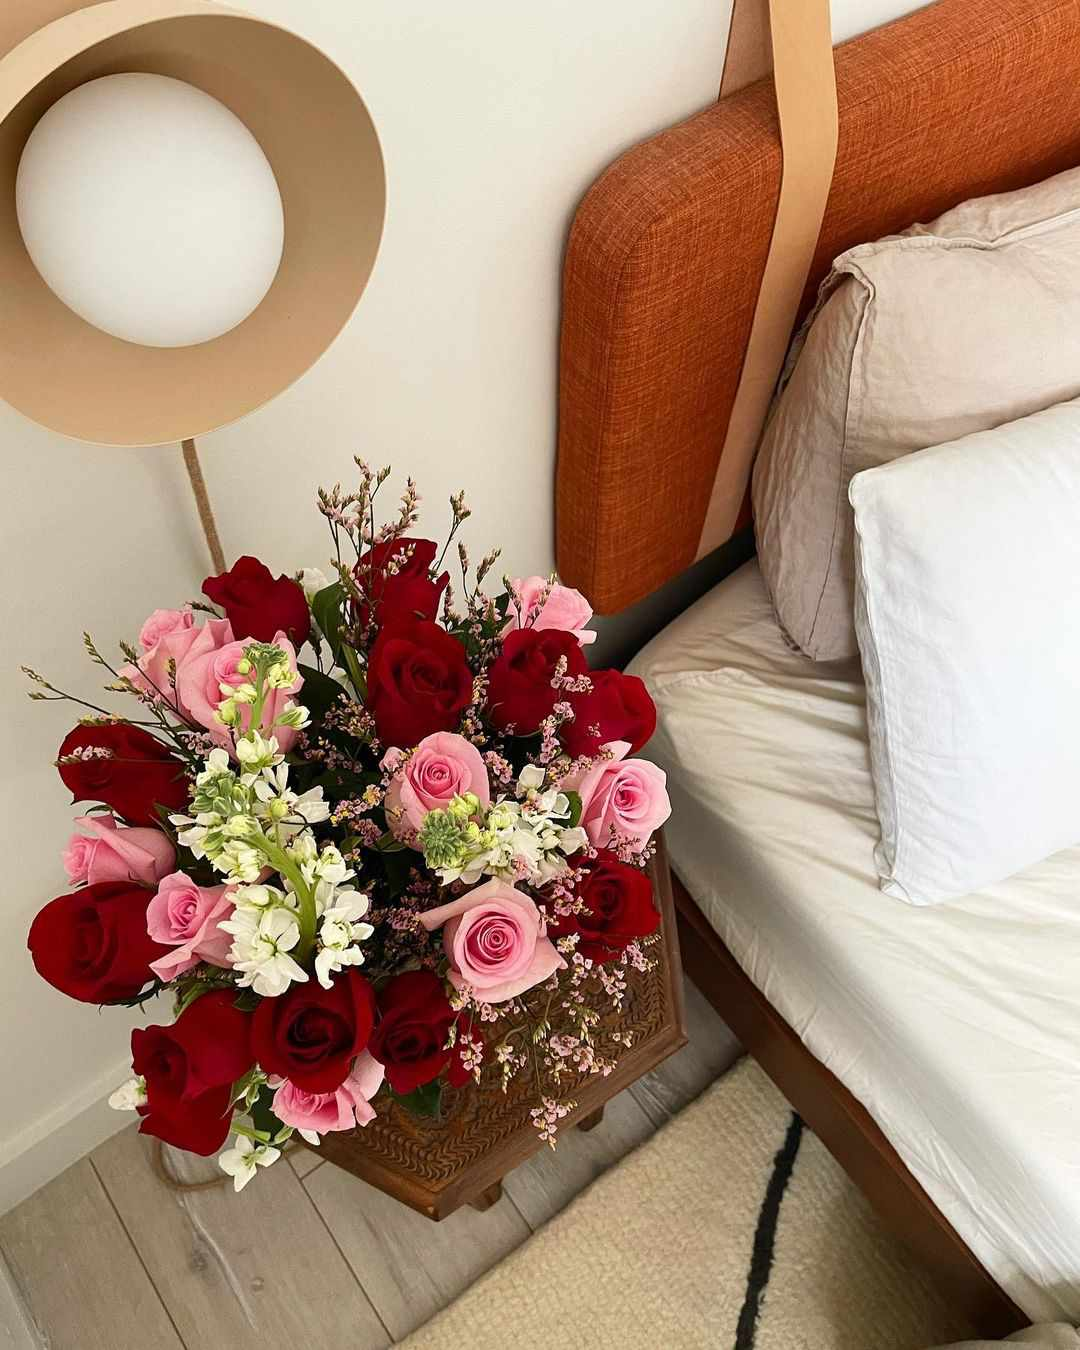 Bouquet of roses next to neutral bed.